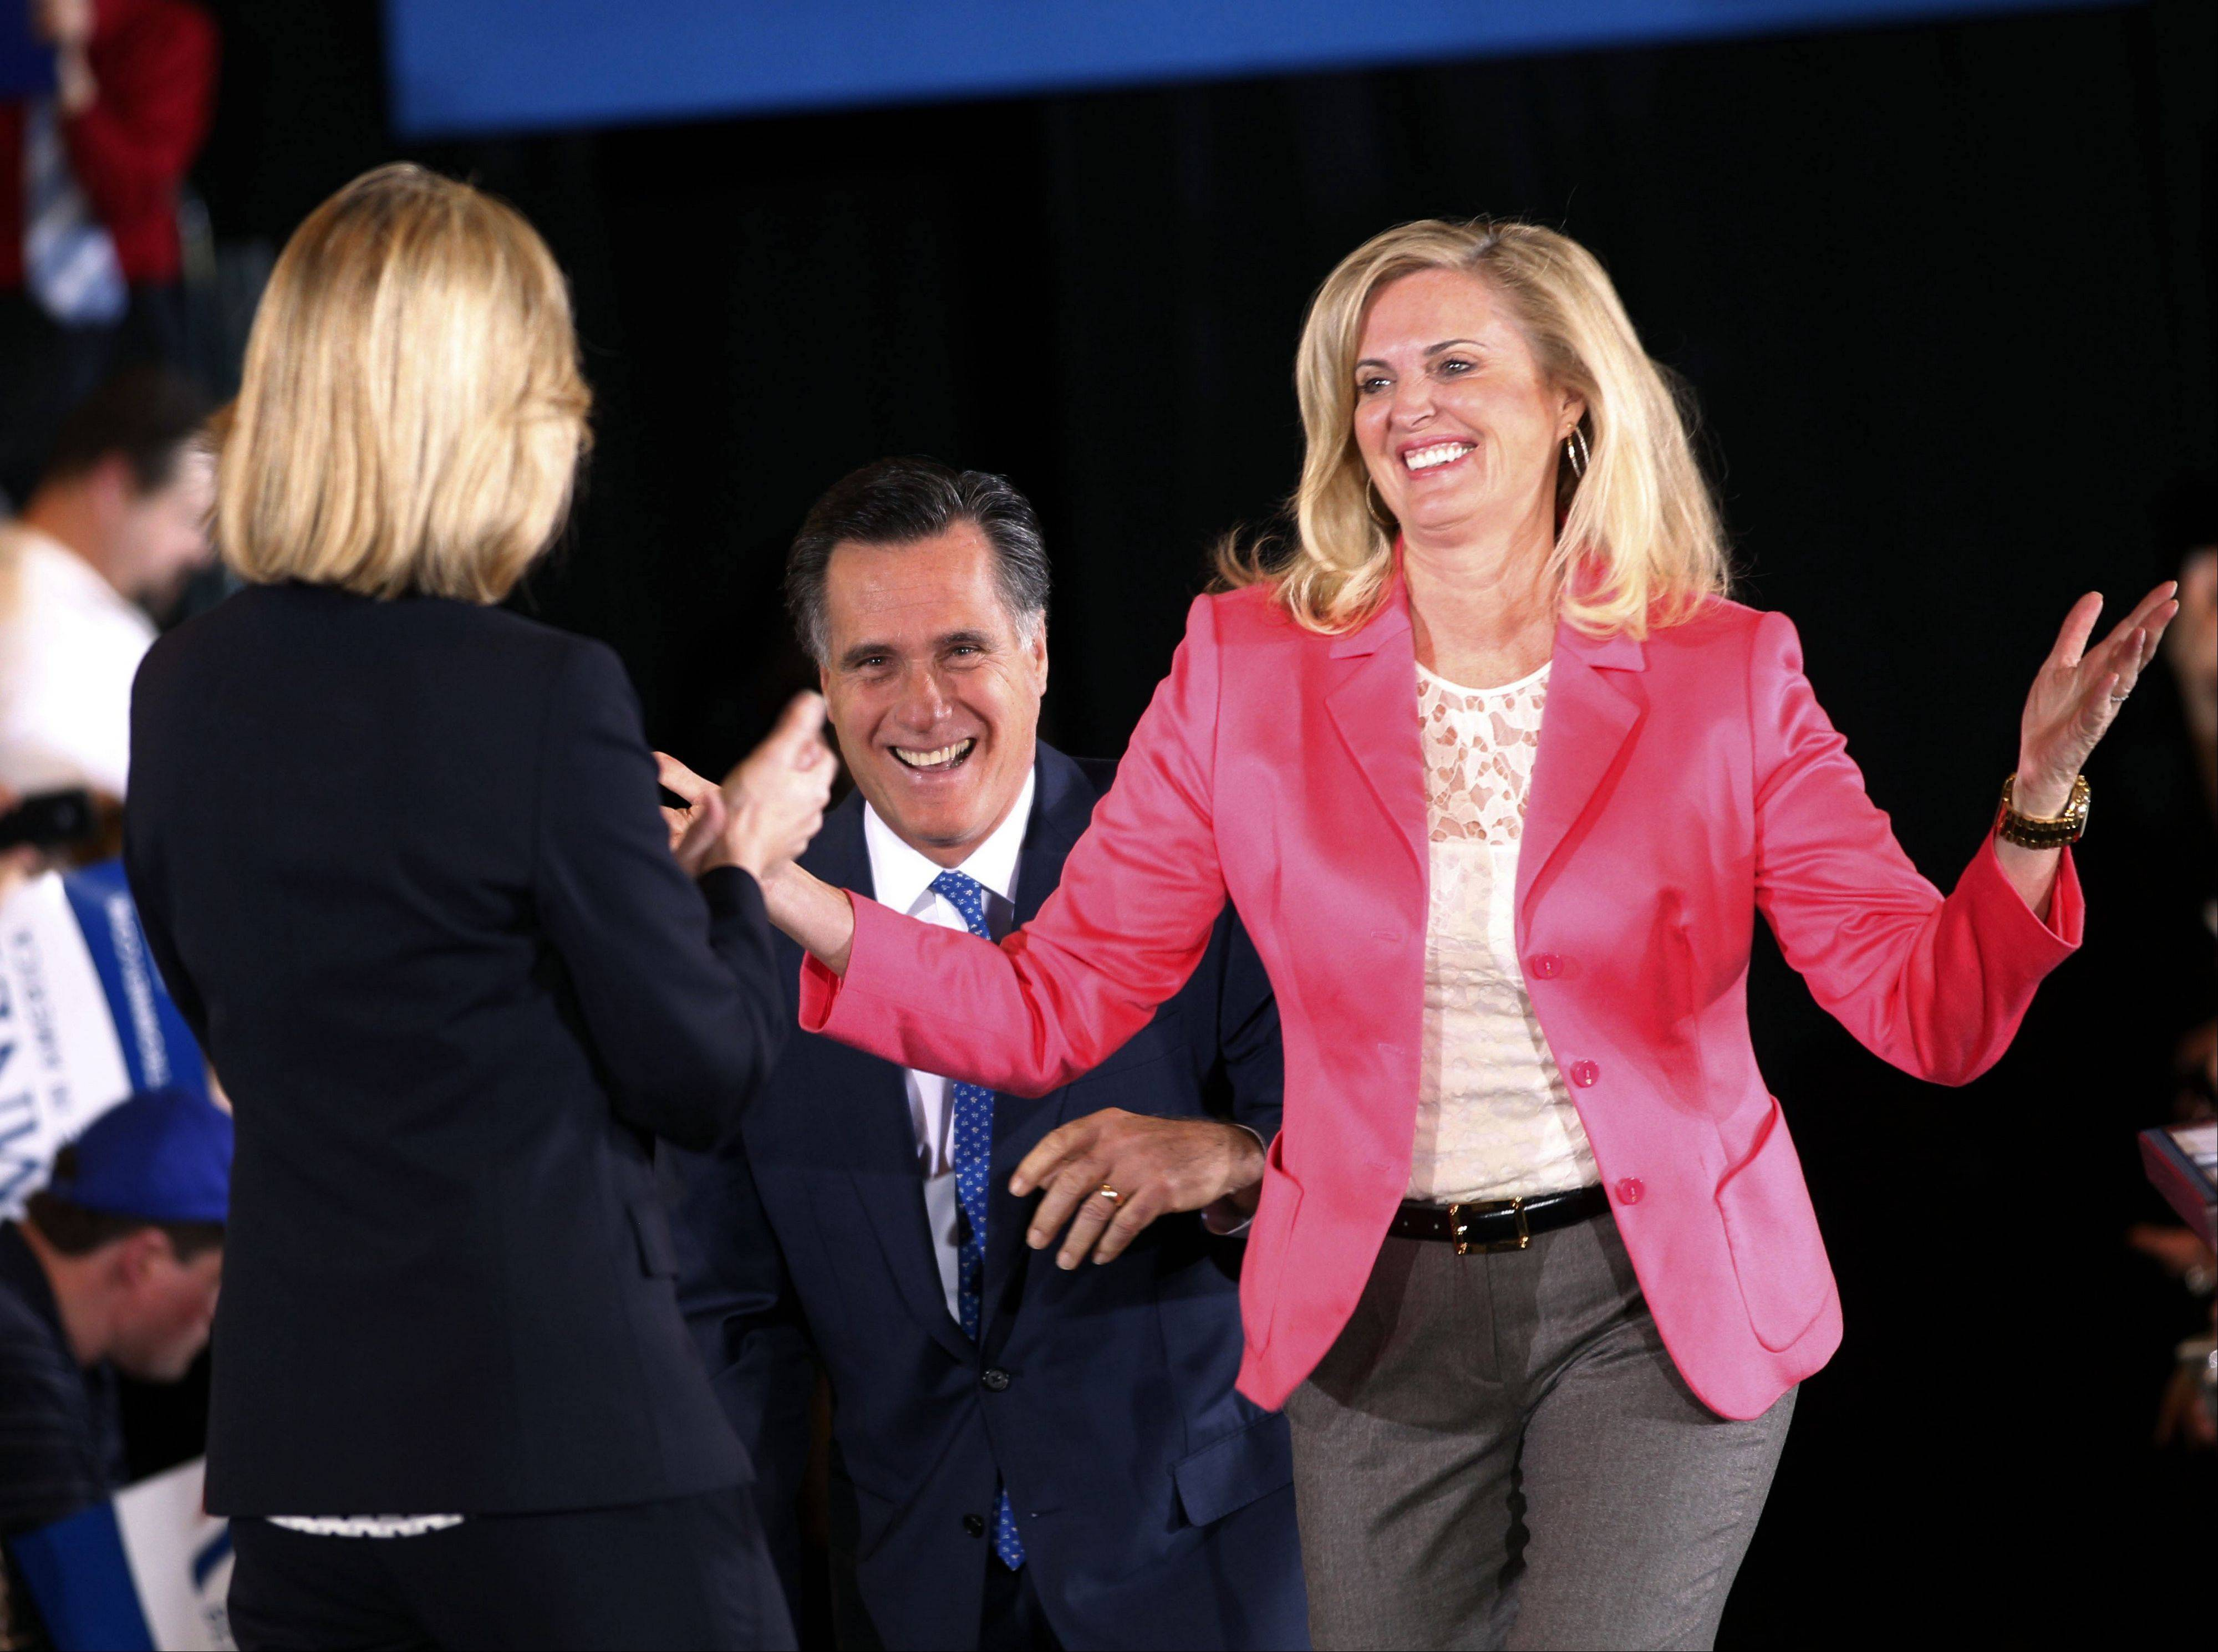 "In this March 6, 2012, file photo, Republican presidential candidate, former Massachusetts Gov. Mitt Romney, and his wife Ann arrive on stage as they are greeted by former Mass. Lt. Gov. Kerry Healey, at their Super Tuesday primary watch party in Boston. To the yearbook editors at the all-girl Kingswood School, Ann Lois Davies' destiny seemed pretty obvious. ""The first lady,"" the entry beside the stunning blond beauty's photo in the 1967 edition of ""Woodwinds"" concluded."